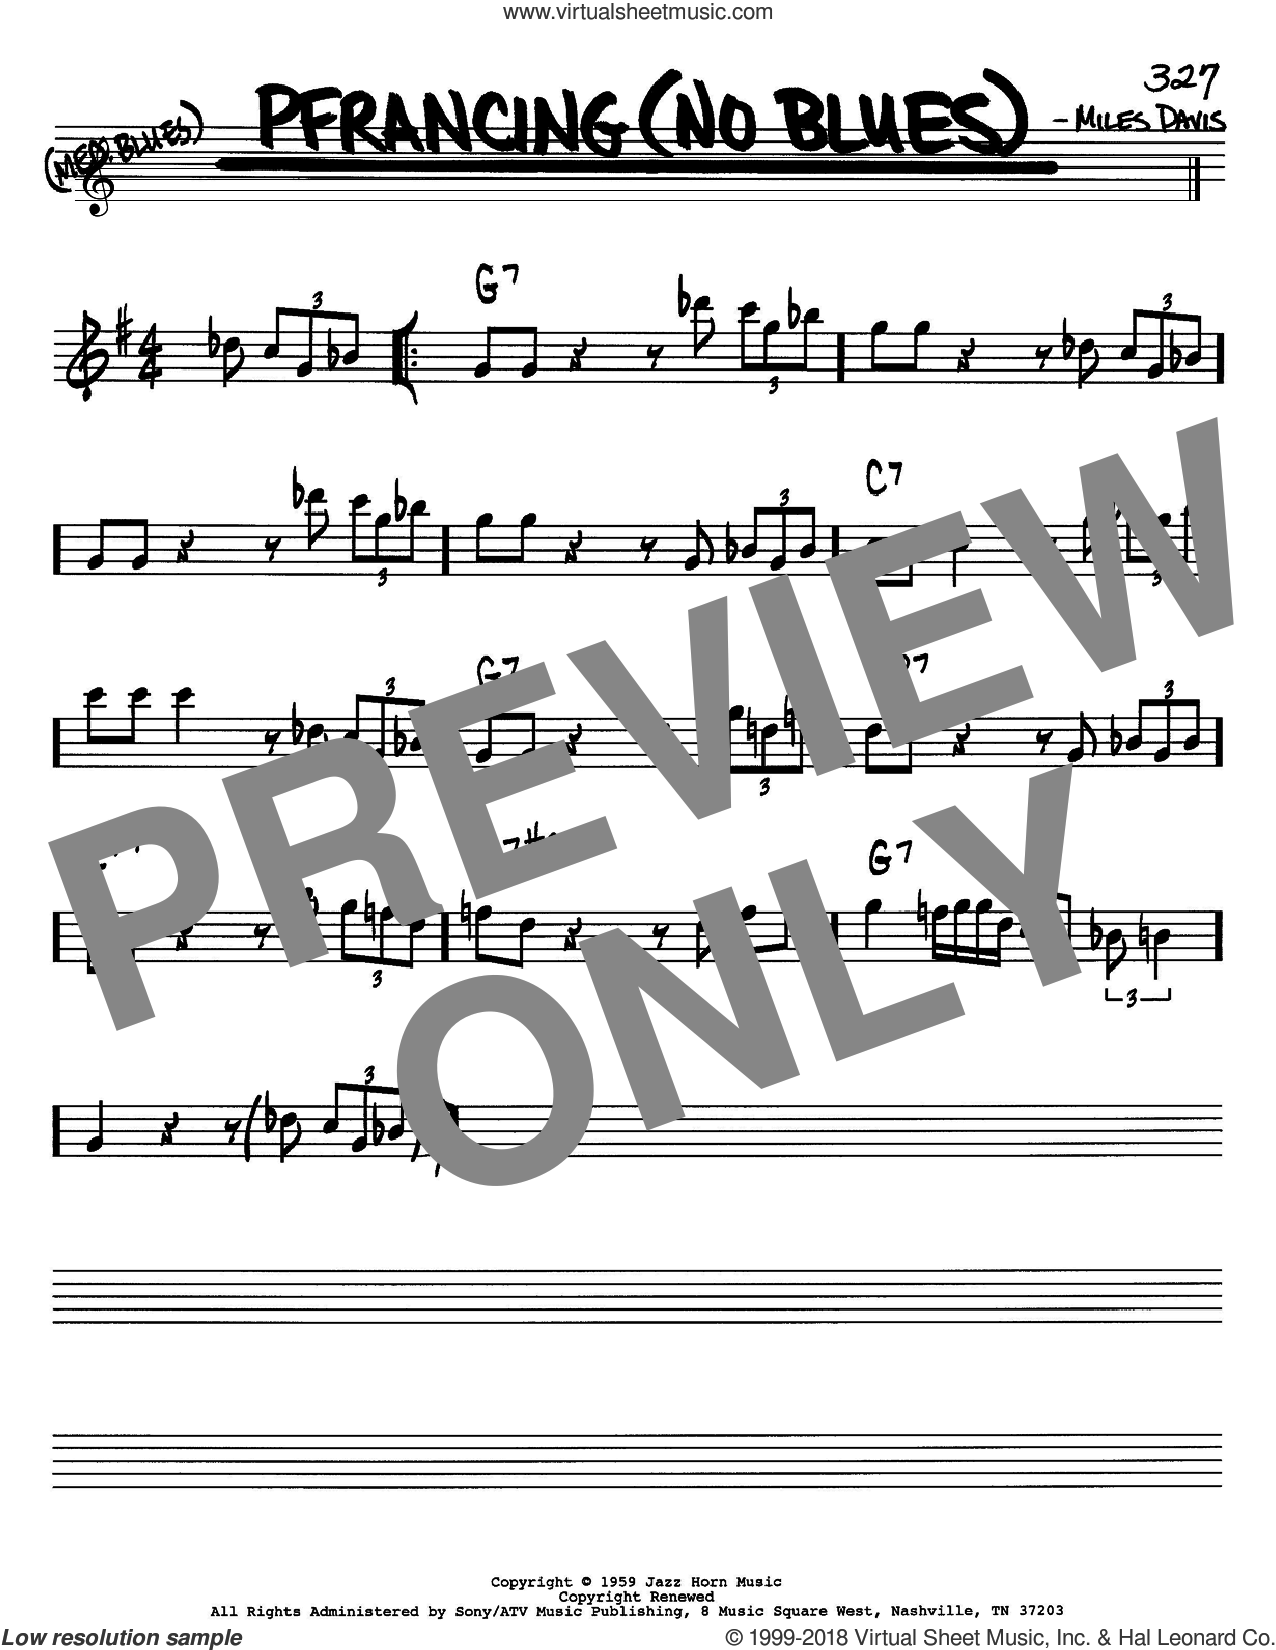 Pfrancing (No Blues) sheet music for voice and other instruments (Bb) by Miles Davis, intermediate voice. Score Image Preview.